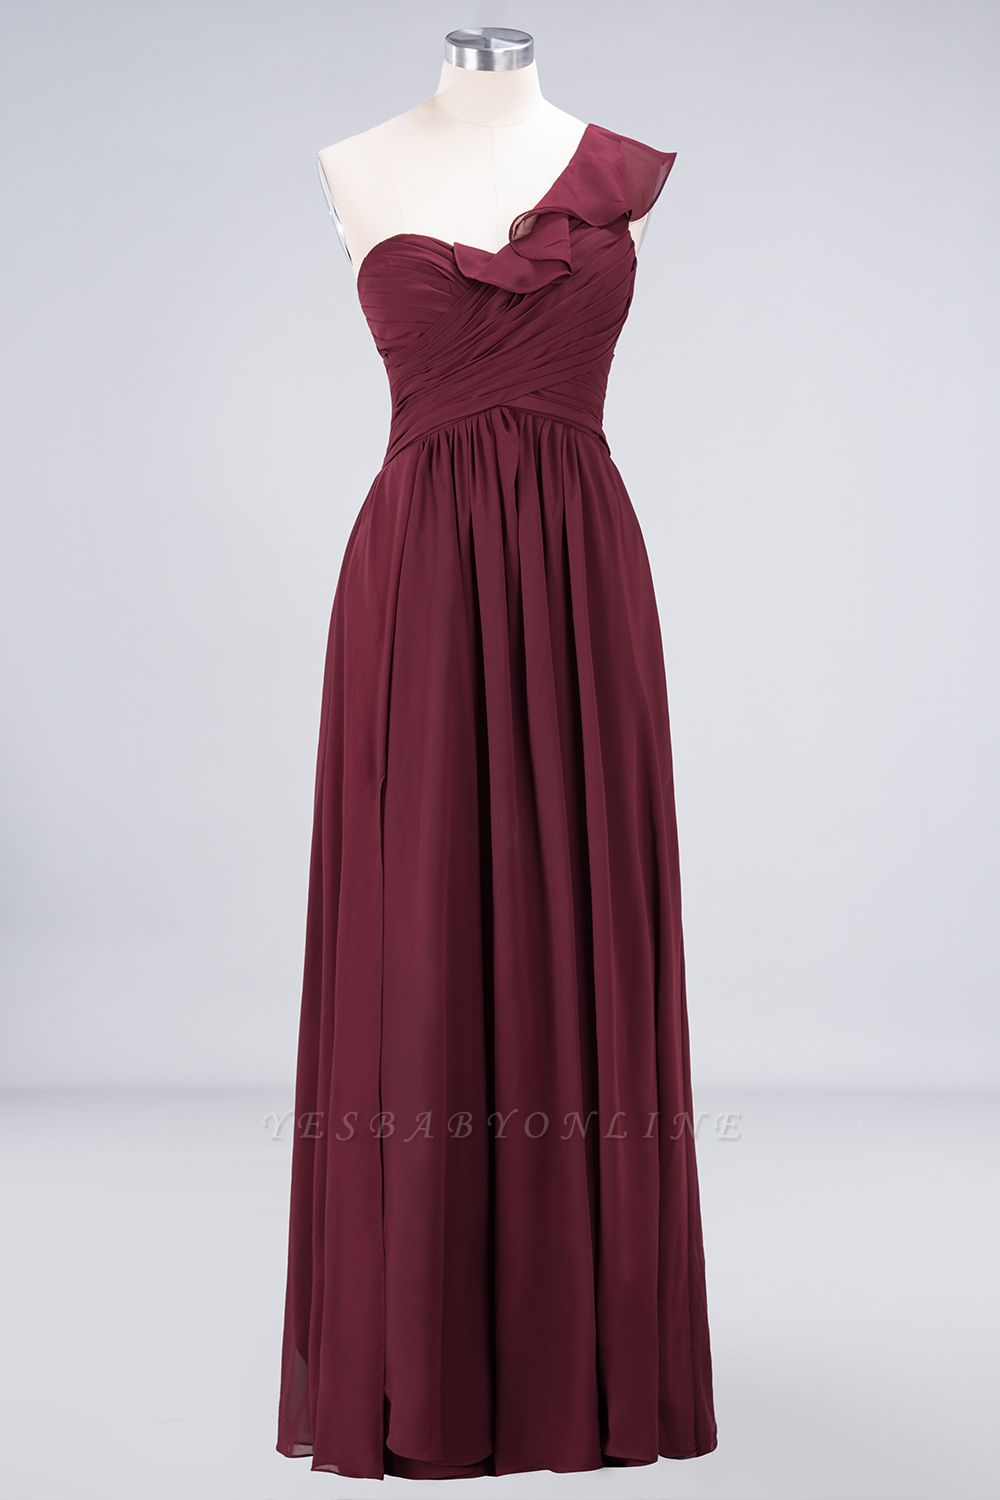 A-Line One-Shoulder Sweetheart Sleeveless Floor-Length  Bridesmaid Dress with Ruffles